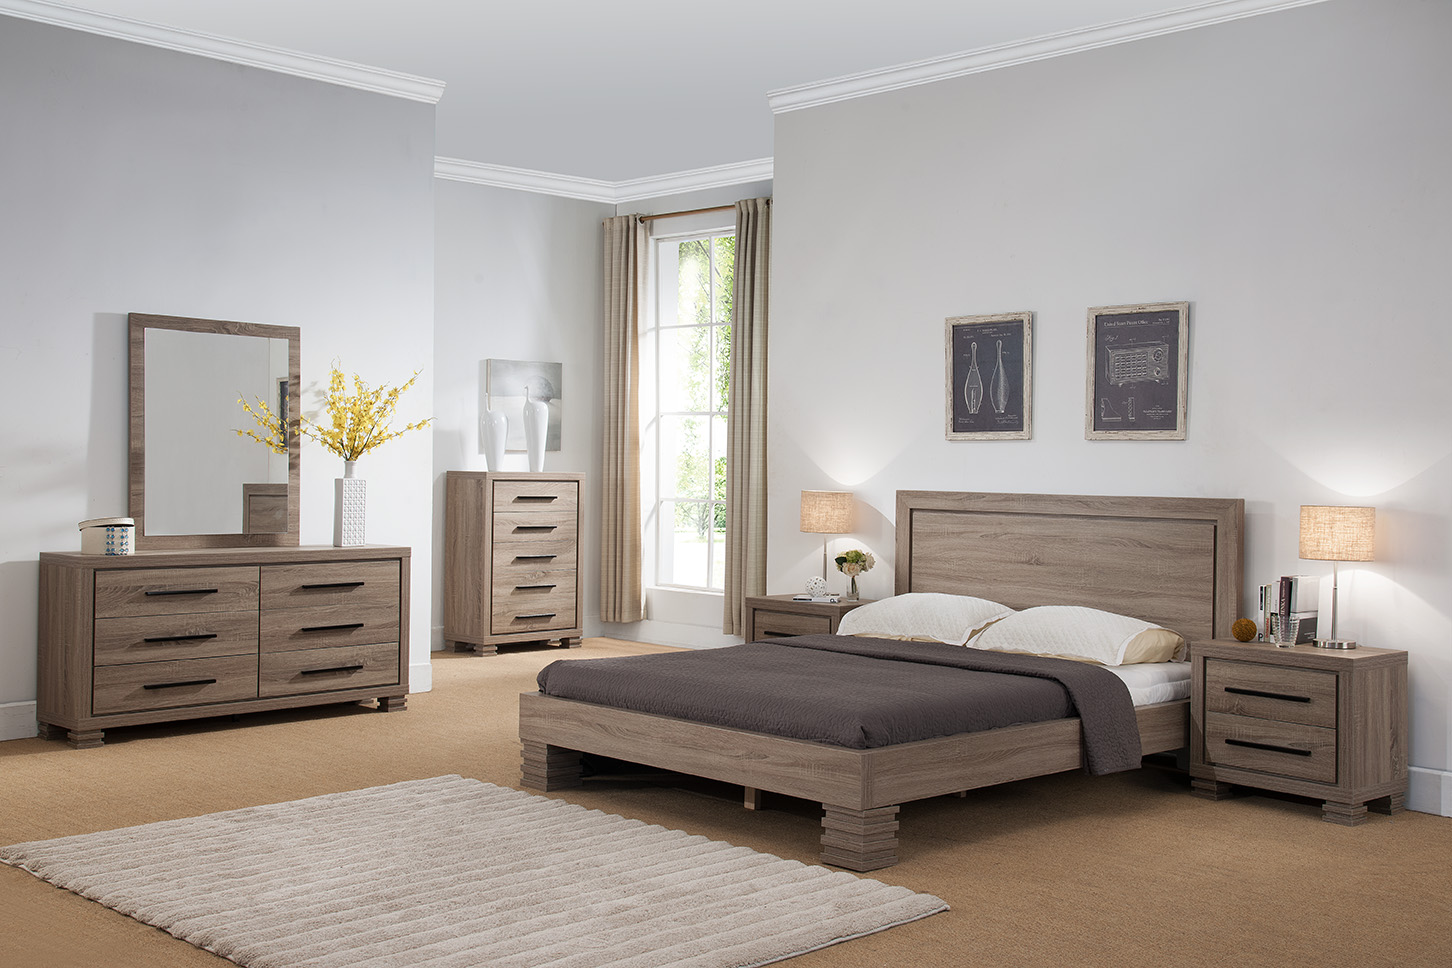 Modern Design 4pc Set Queen Size Platform Bed Dresser, Mirror & Nightstand  Dark Taupe Finish Bedroom Furniture